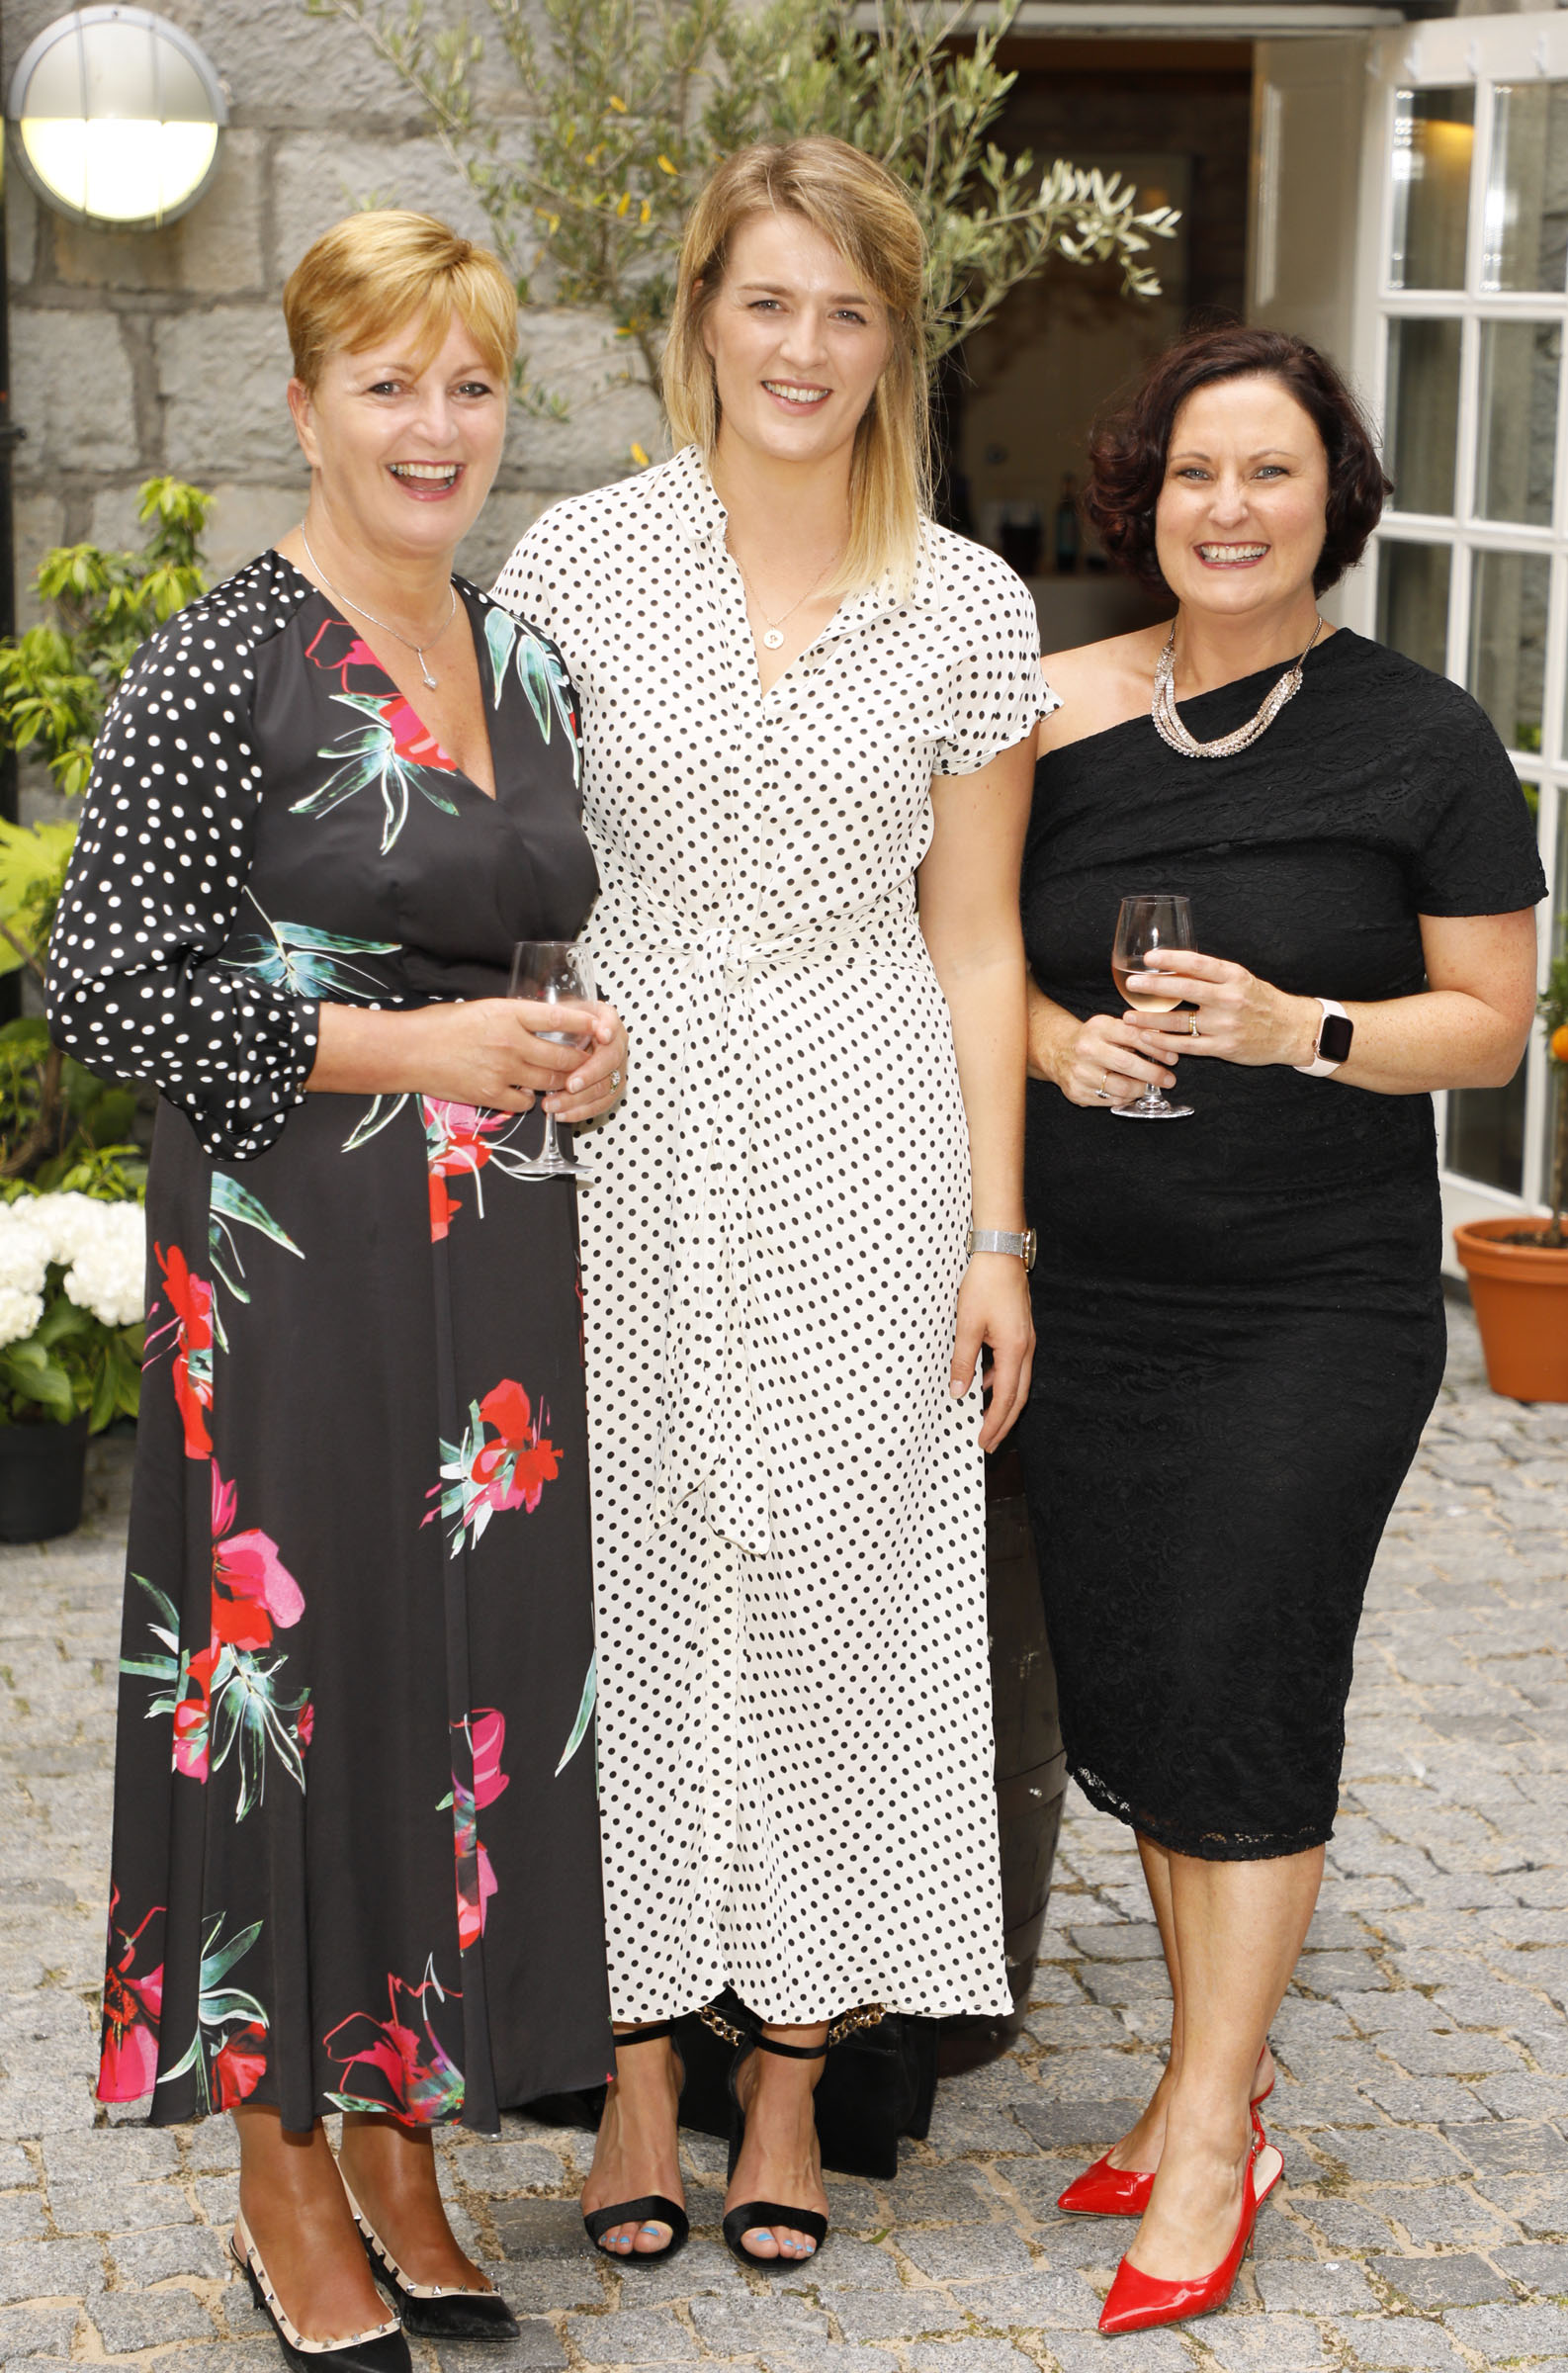 Kay Ryan, Cliodhna McCarthy and Edel Russell at the Centra 'Wines We Love' event in Dublin. Photo: Kieran Harnett